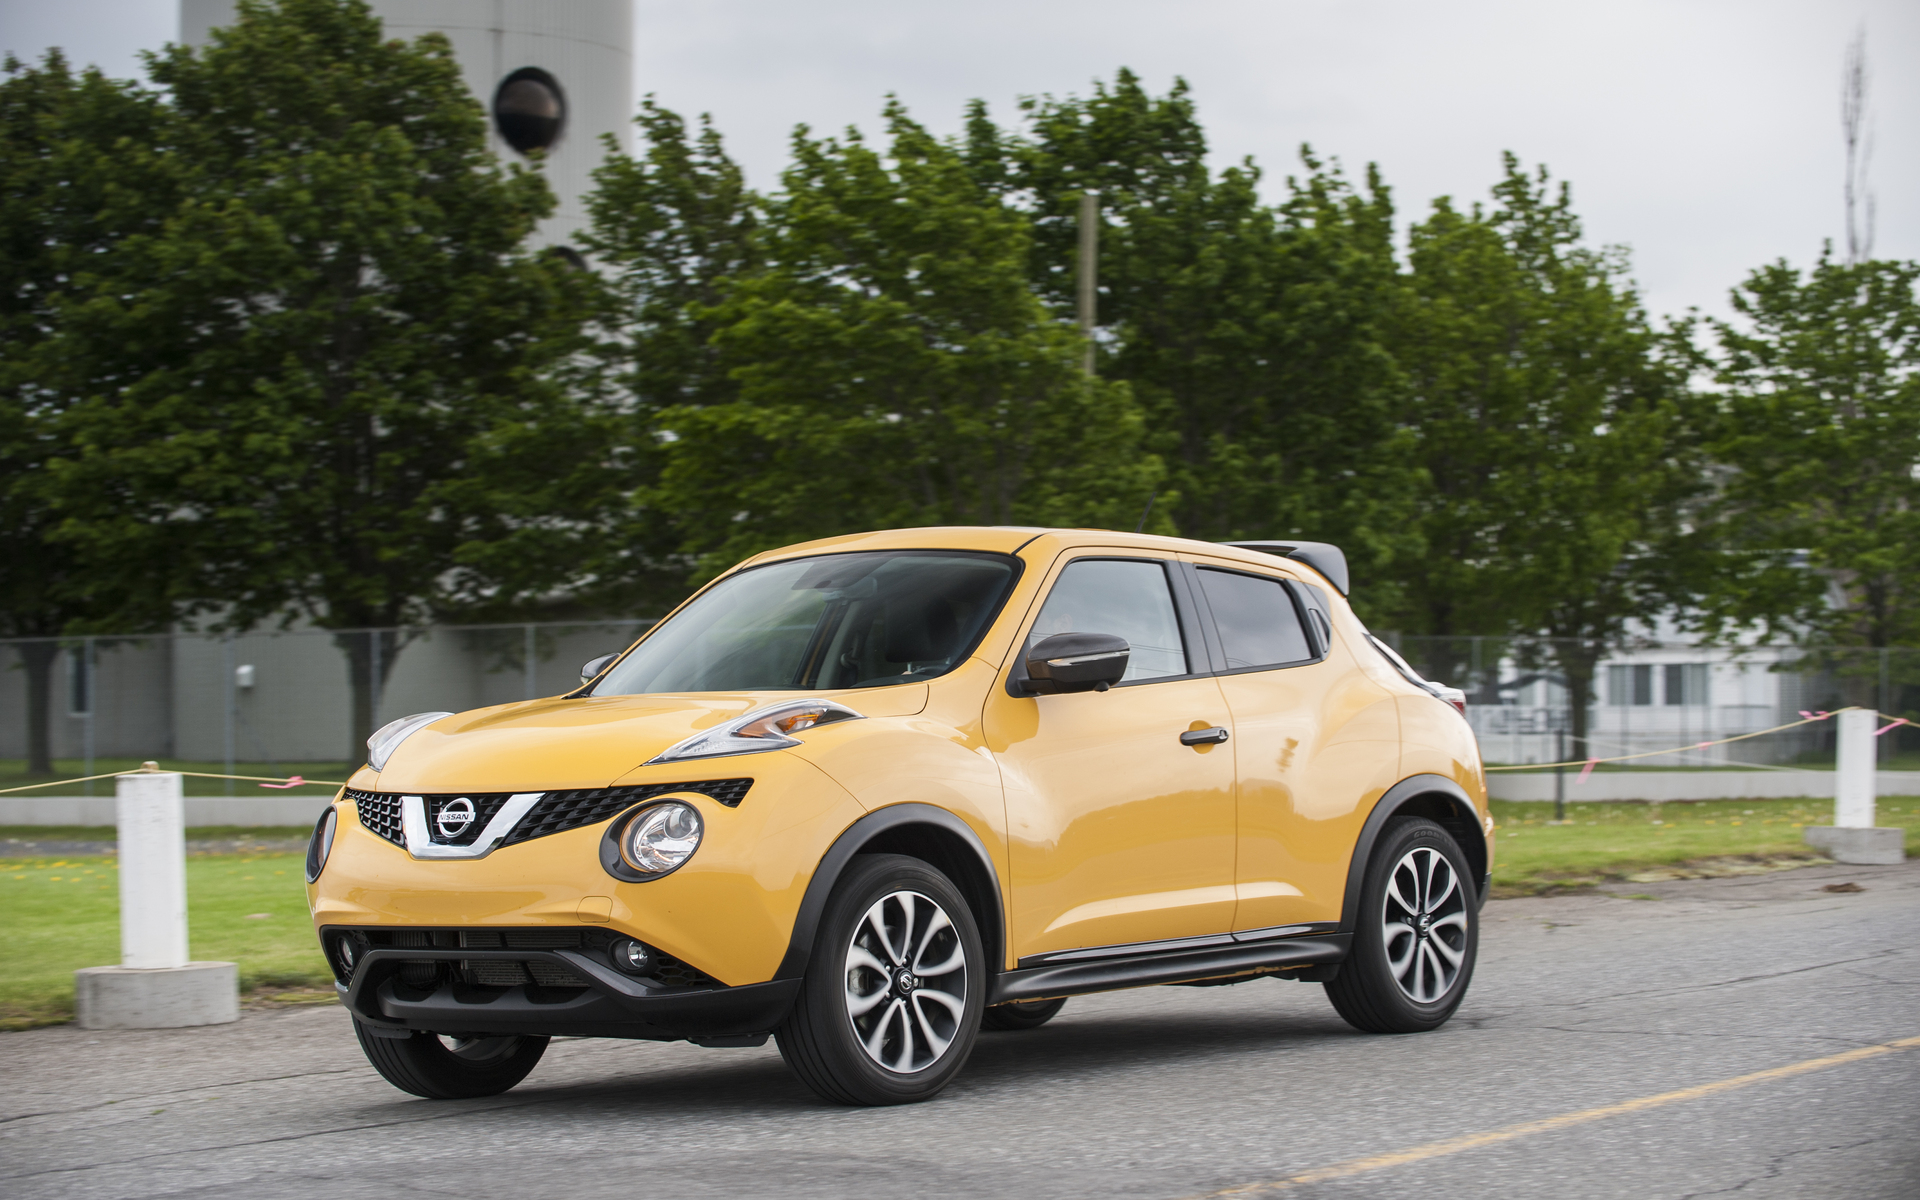 Nissan juke 2016 les fruits de la patience guide auto for Neuer nissan juke 2016